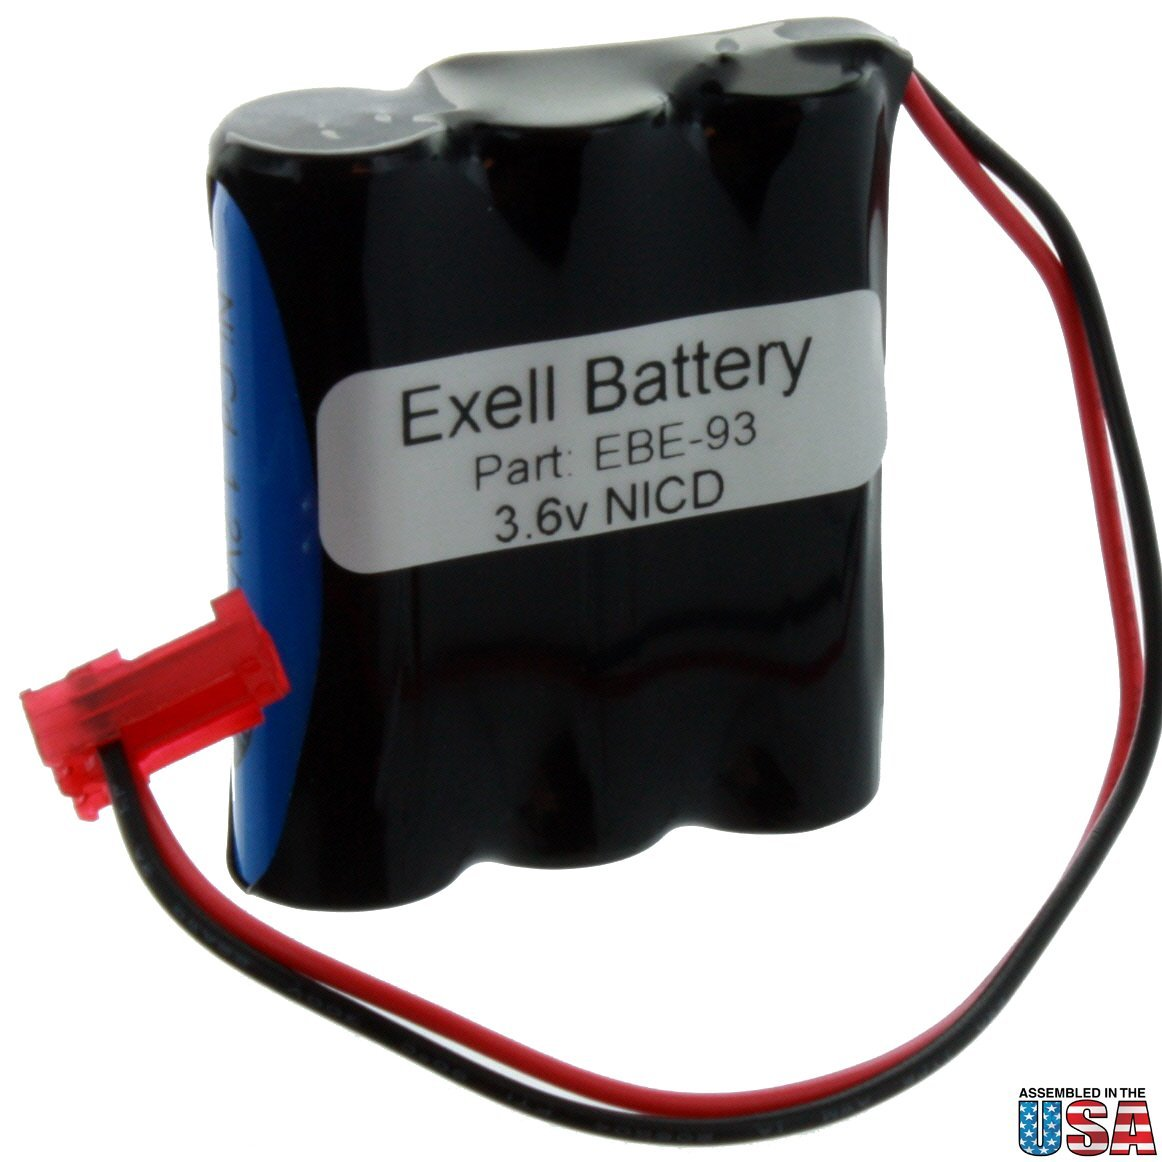 EBE-93 3.6V NICD Battery For Emergency Lights 026-148 + Free Shipping